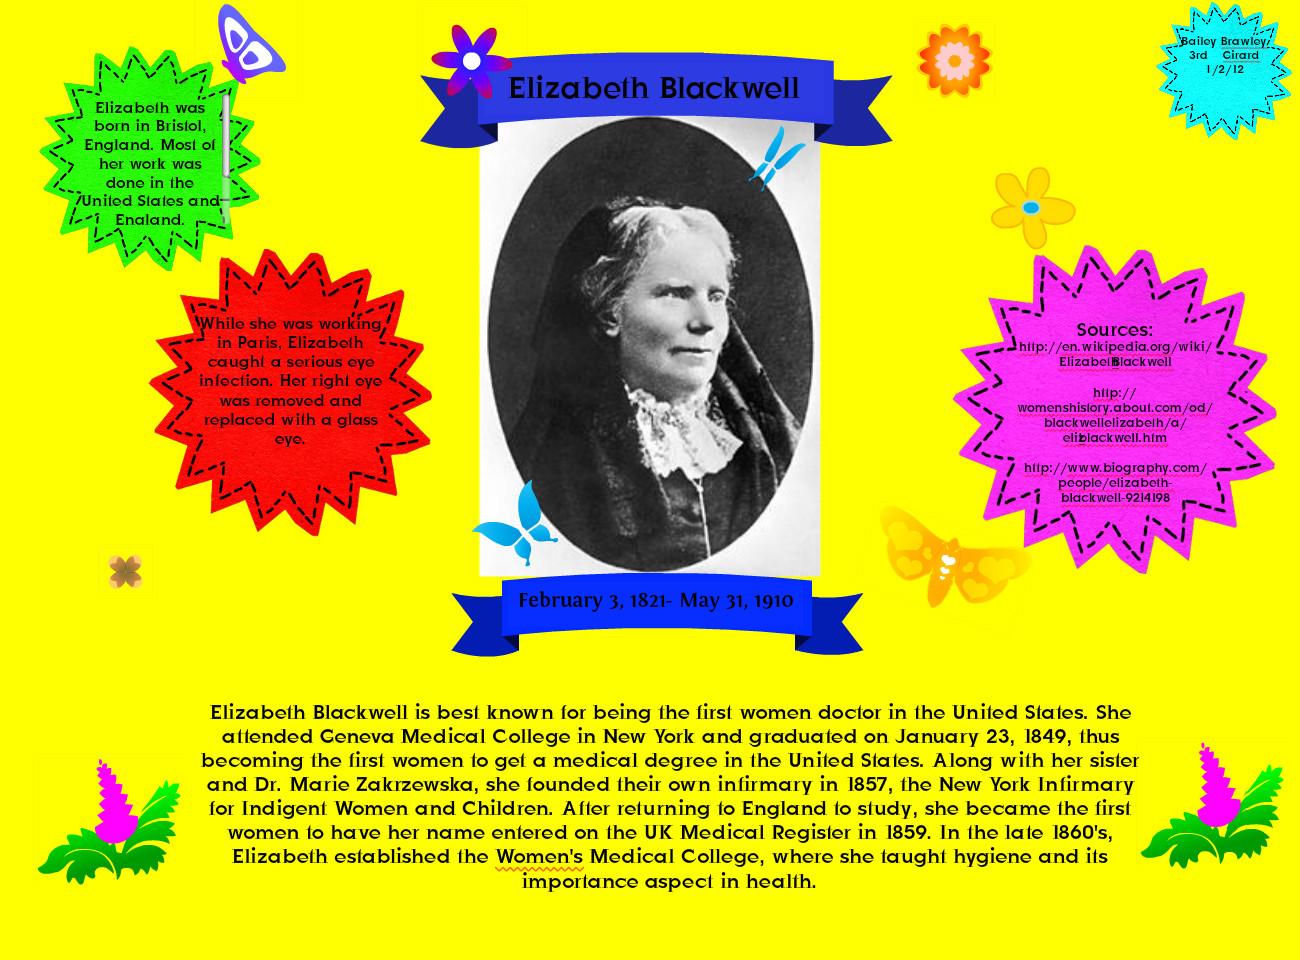 elizabeth blackwell thesis statement Elizabeth blackwell 2 thesis: the theme of the movie elizabeth the golden age revolves around royalty and power struggle between catholic spain ruled by king philip ii and elizabeth's protestant england thesis statement: virgin queen elizabeth i's fame/ notoriety is.